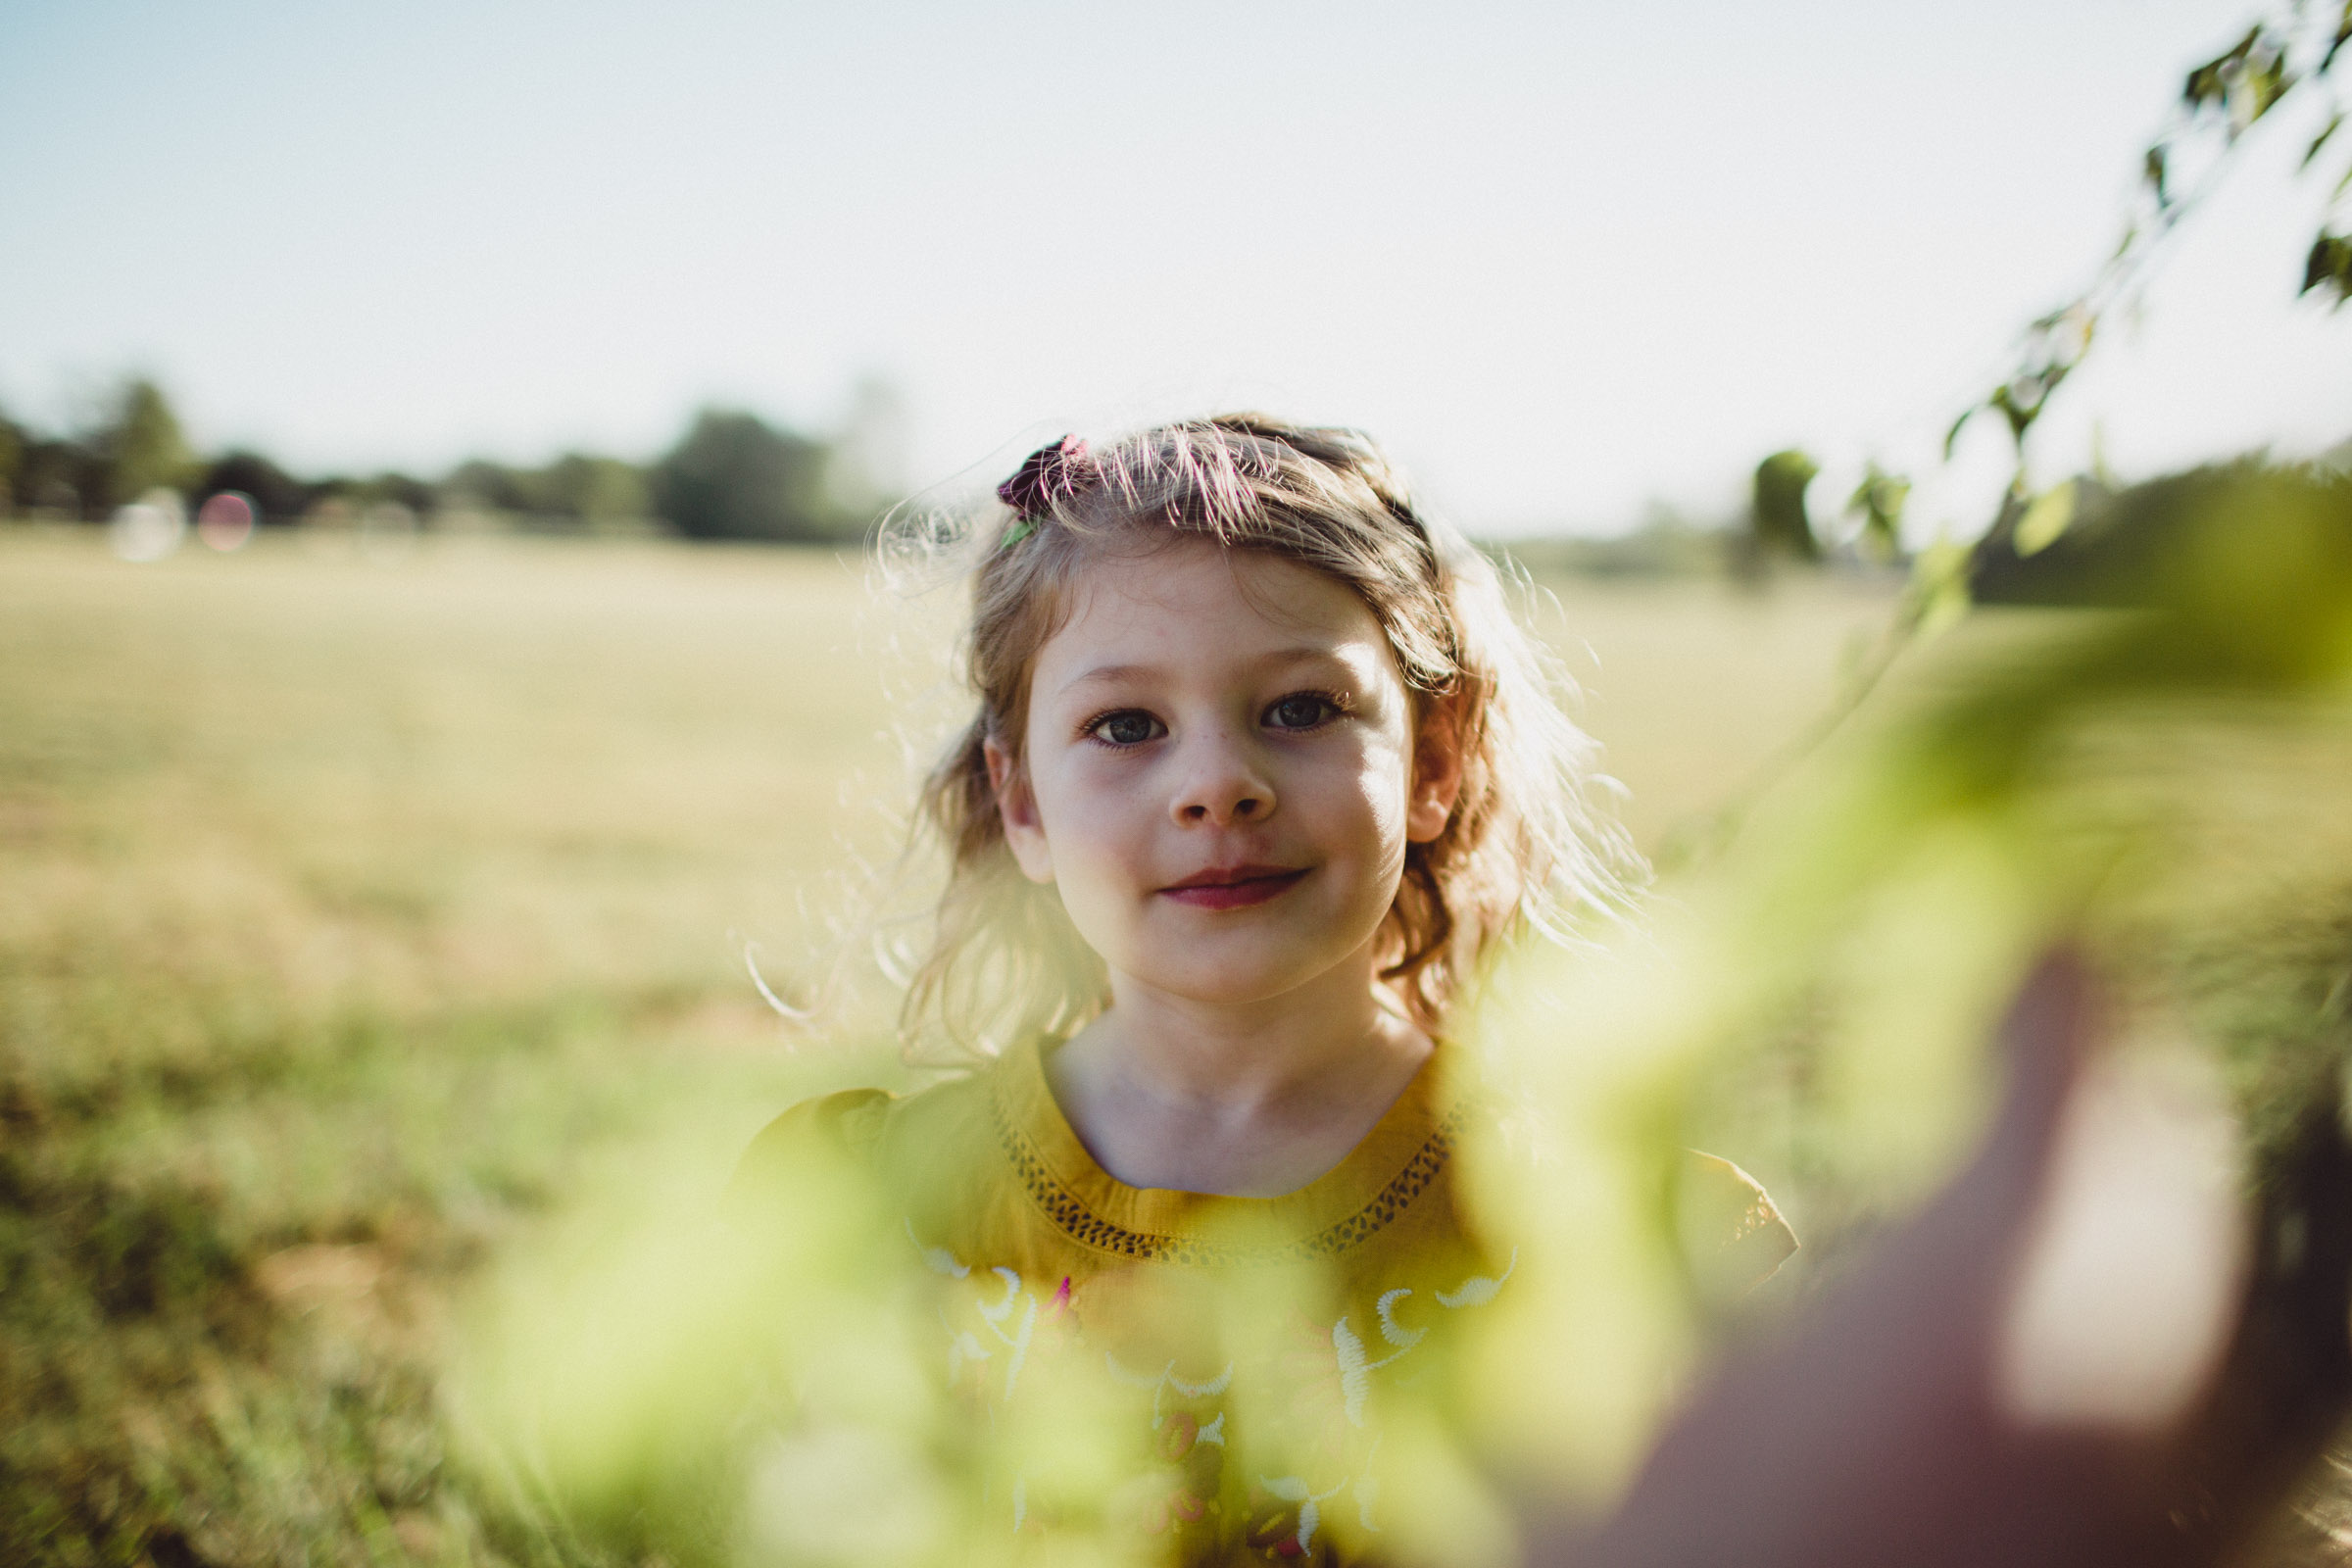 Portrait of toddler girl looking straight into camera lens through leaves